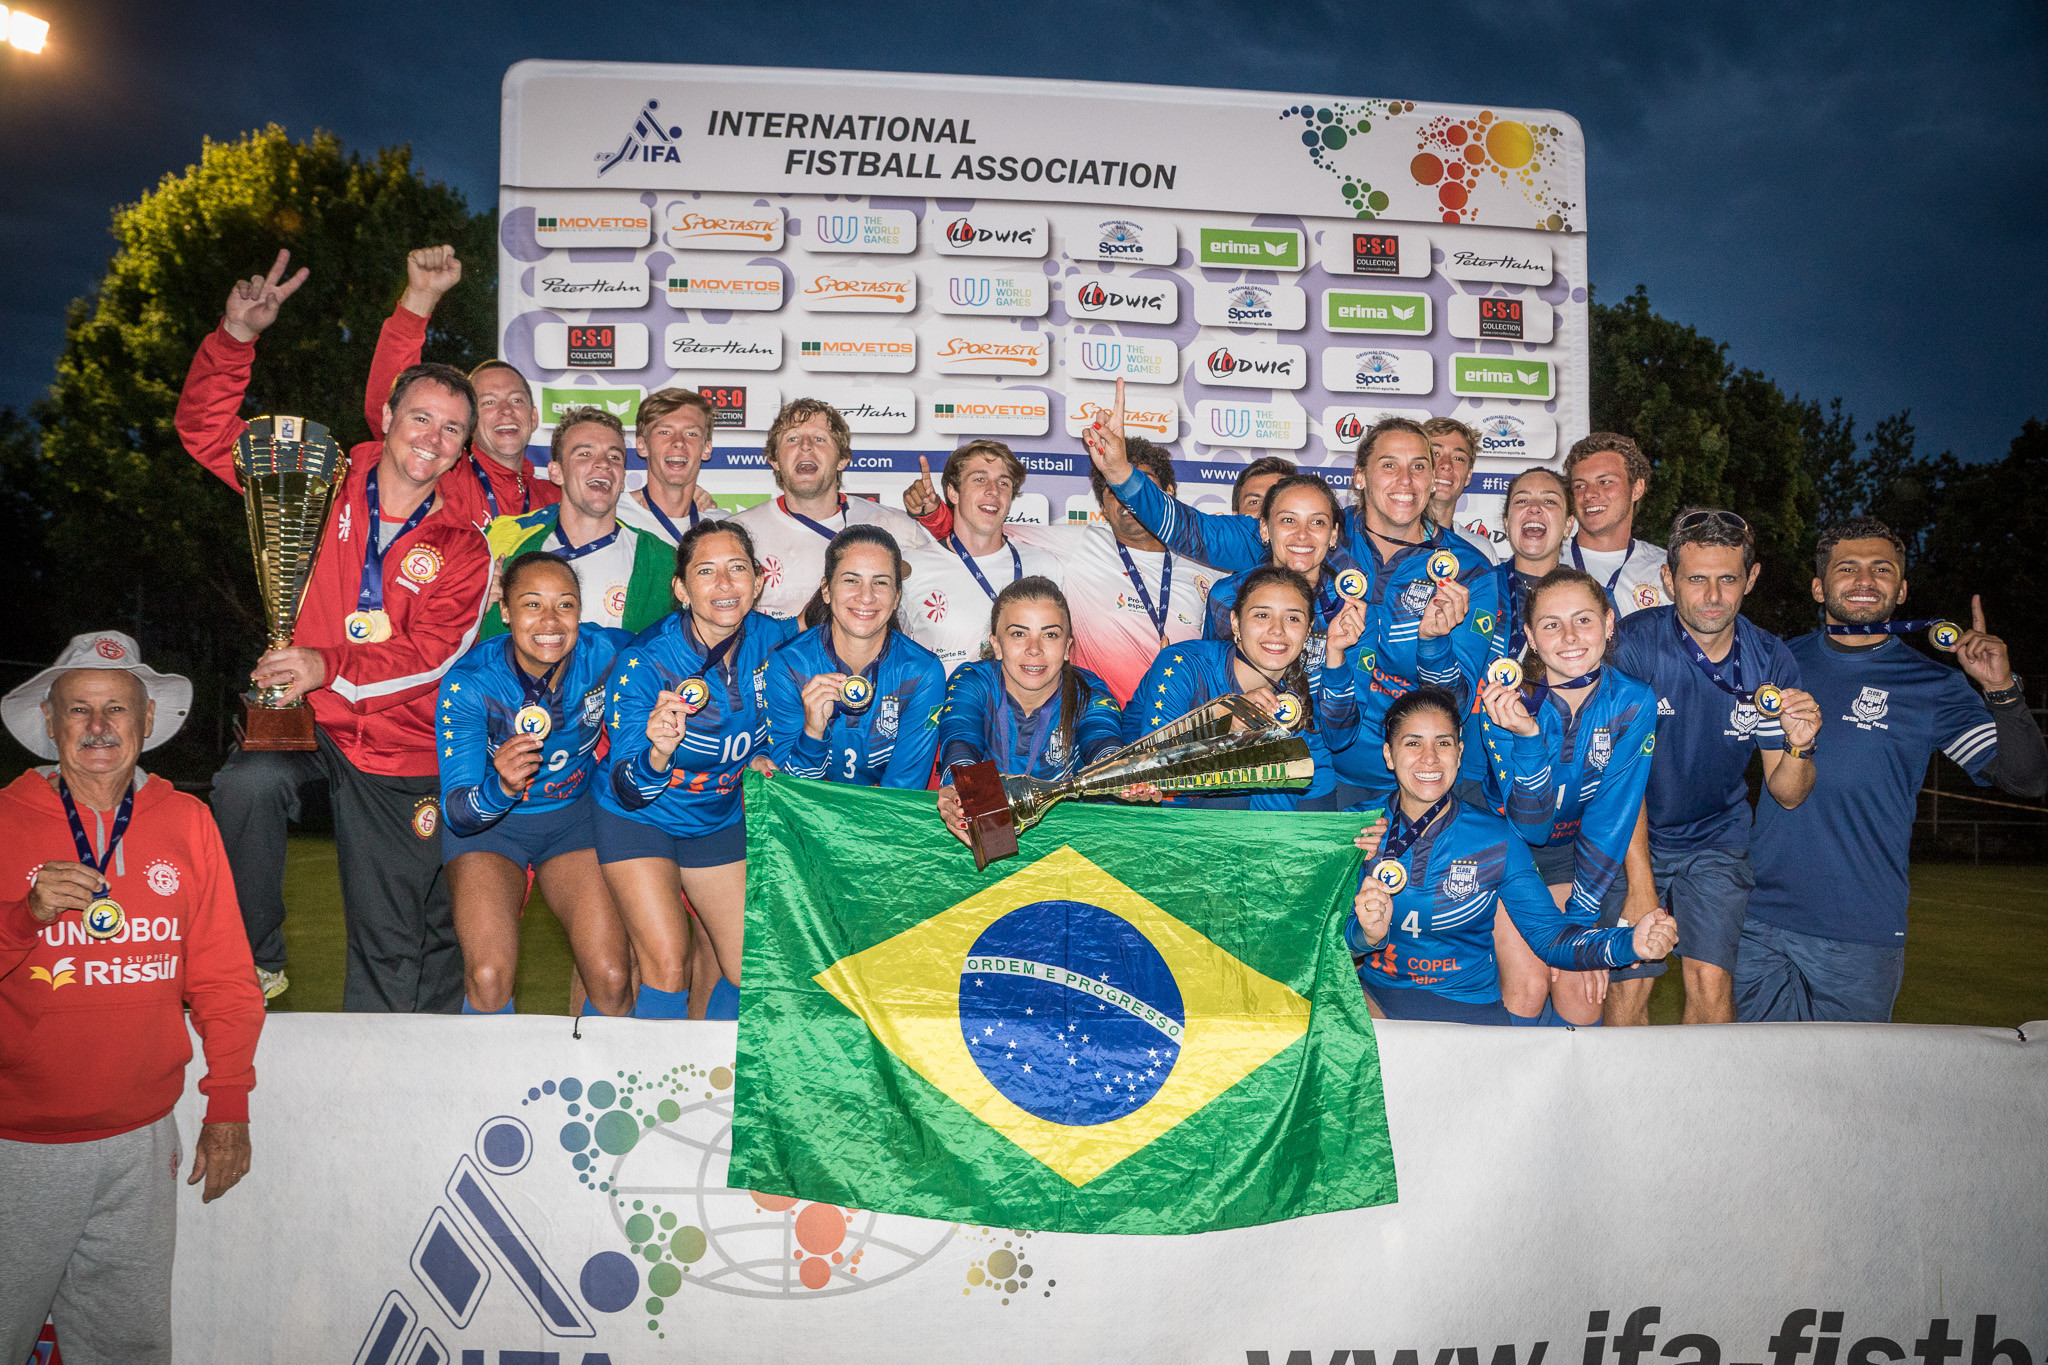 Sociedade Ginástica Novo Hamburgo and Clube Duque de Caxias will seek to defend their men's and women's titles at the 2019 International Fistball Assocation World Tour Finals in Salzburg ©IFA